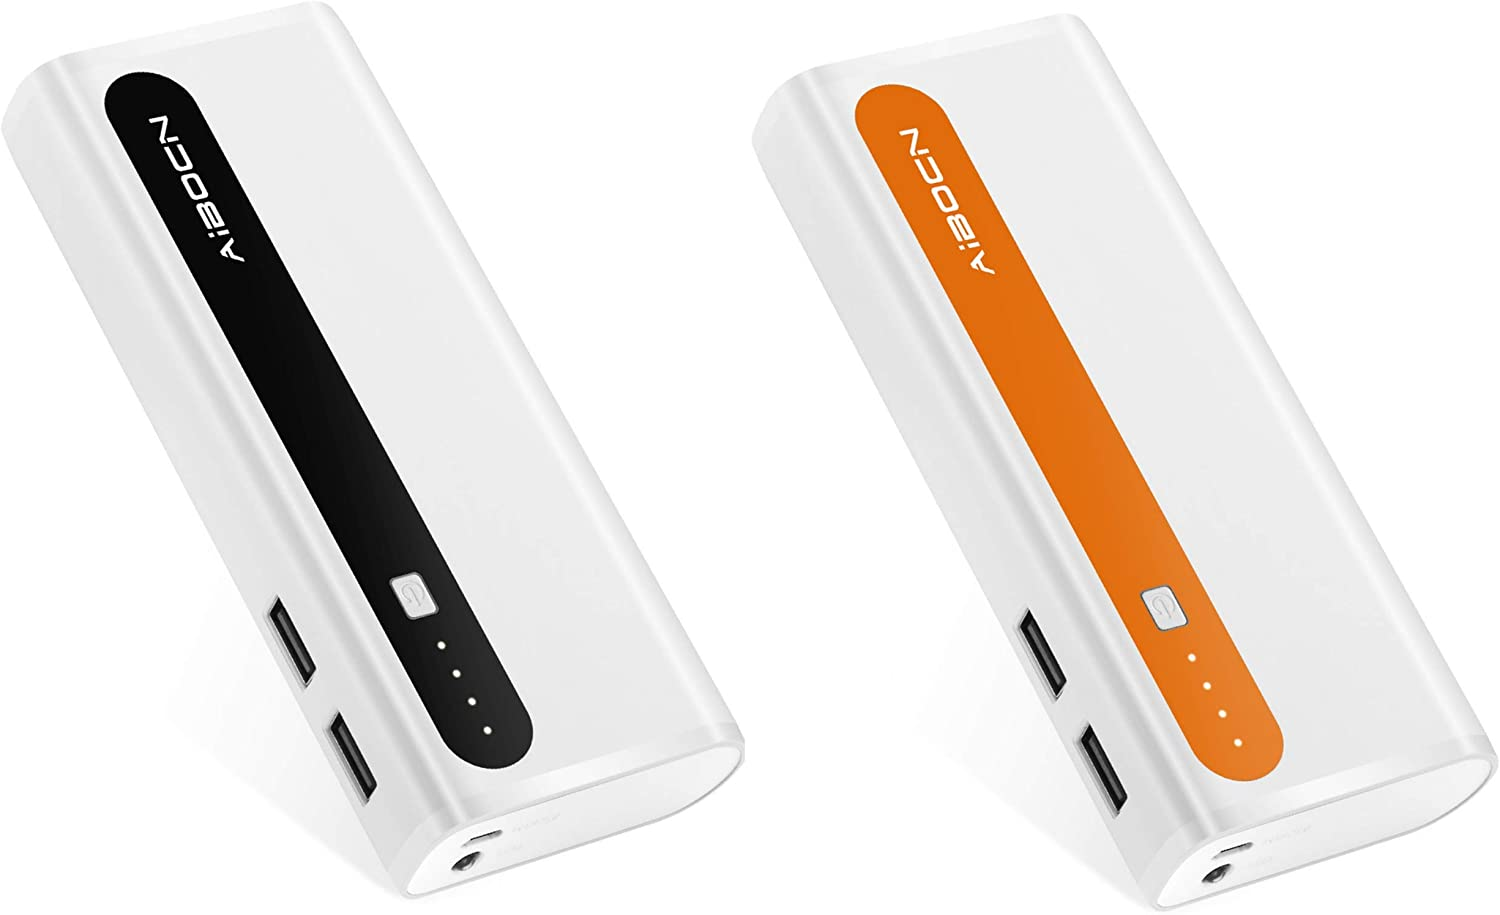 Aibocn Portable Power Bank 2 Pack External Battery Charger with Flashlight for iPhone iPad Samsung Galaxy Compatible with Smartphones Tablet-Black and Orange